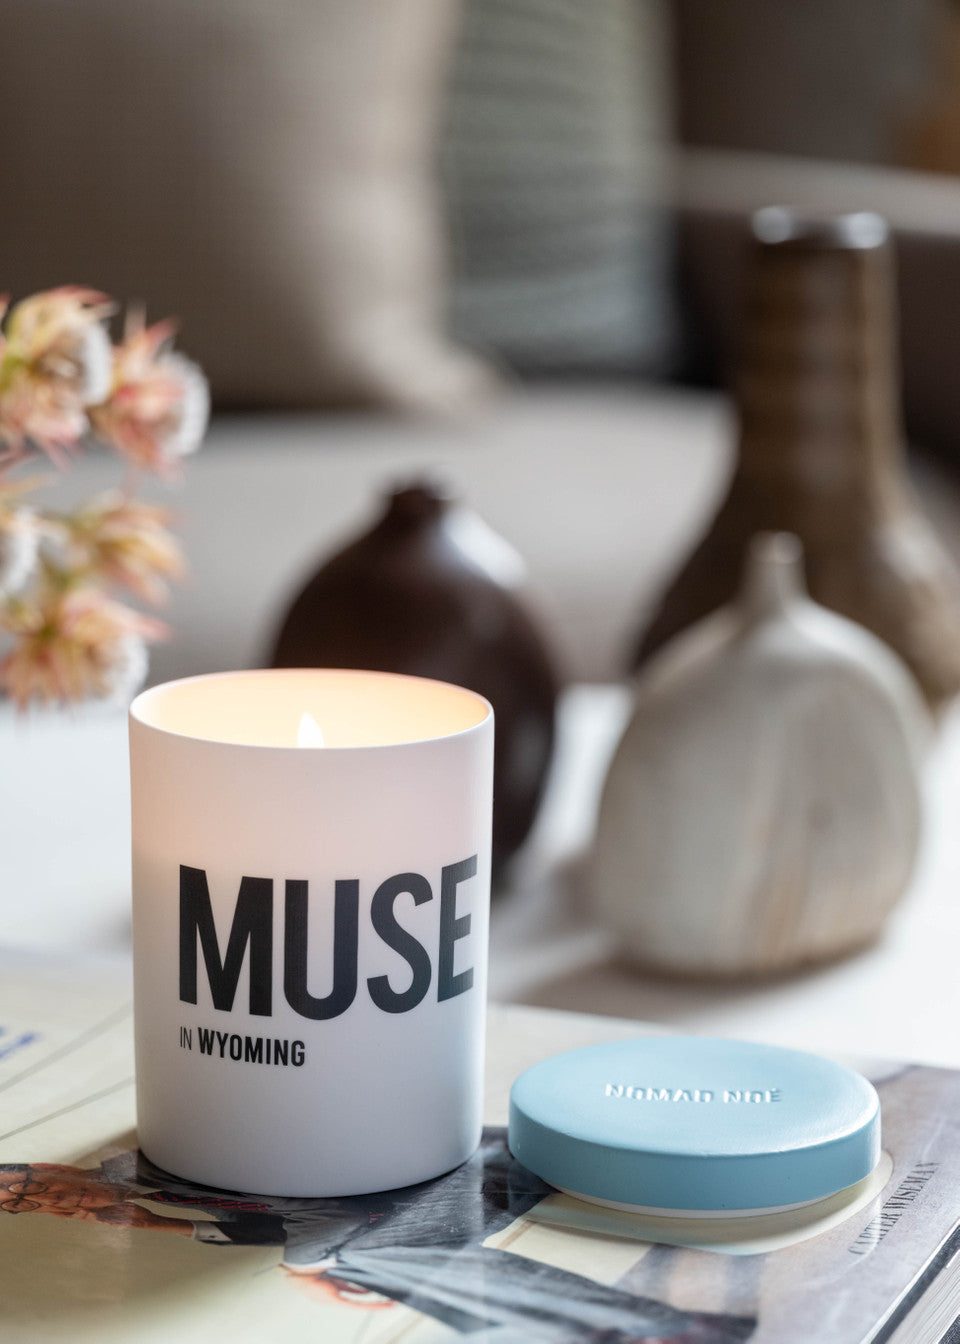 MUSE candle by Nomad Noé